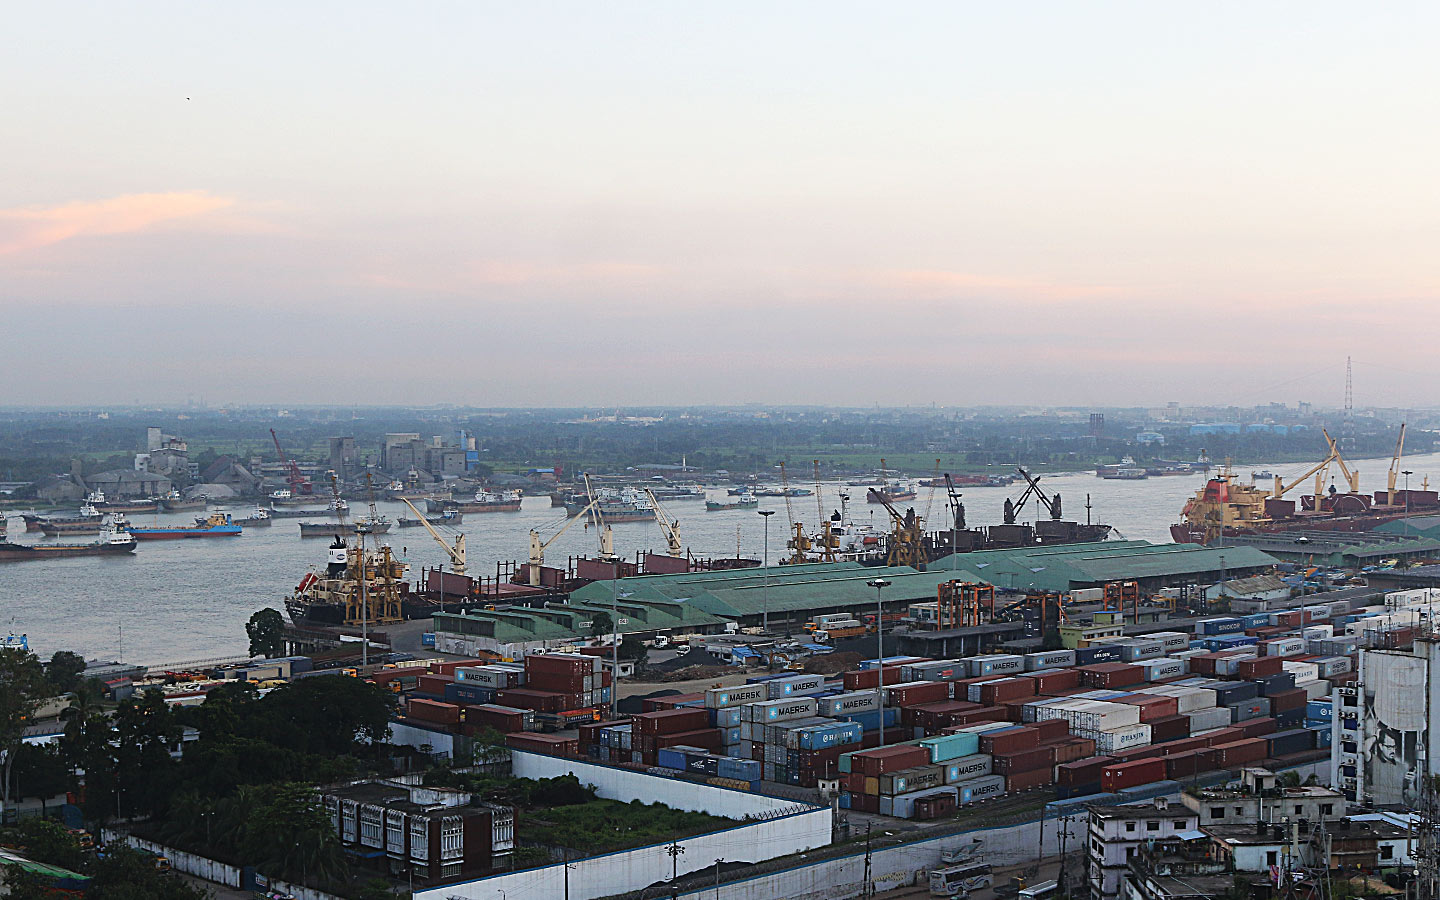 One of the busiest container ports of Agrabad